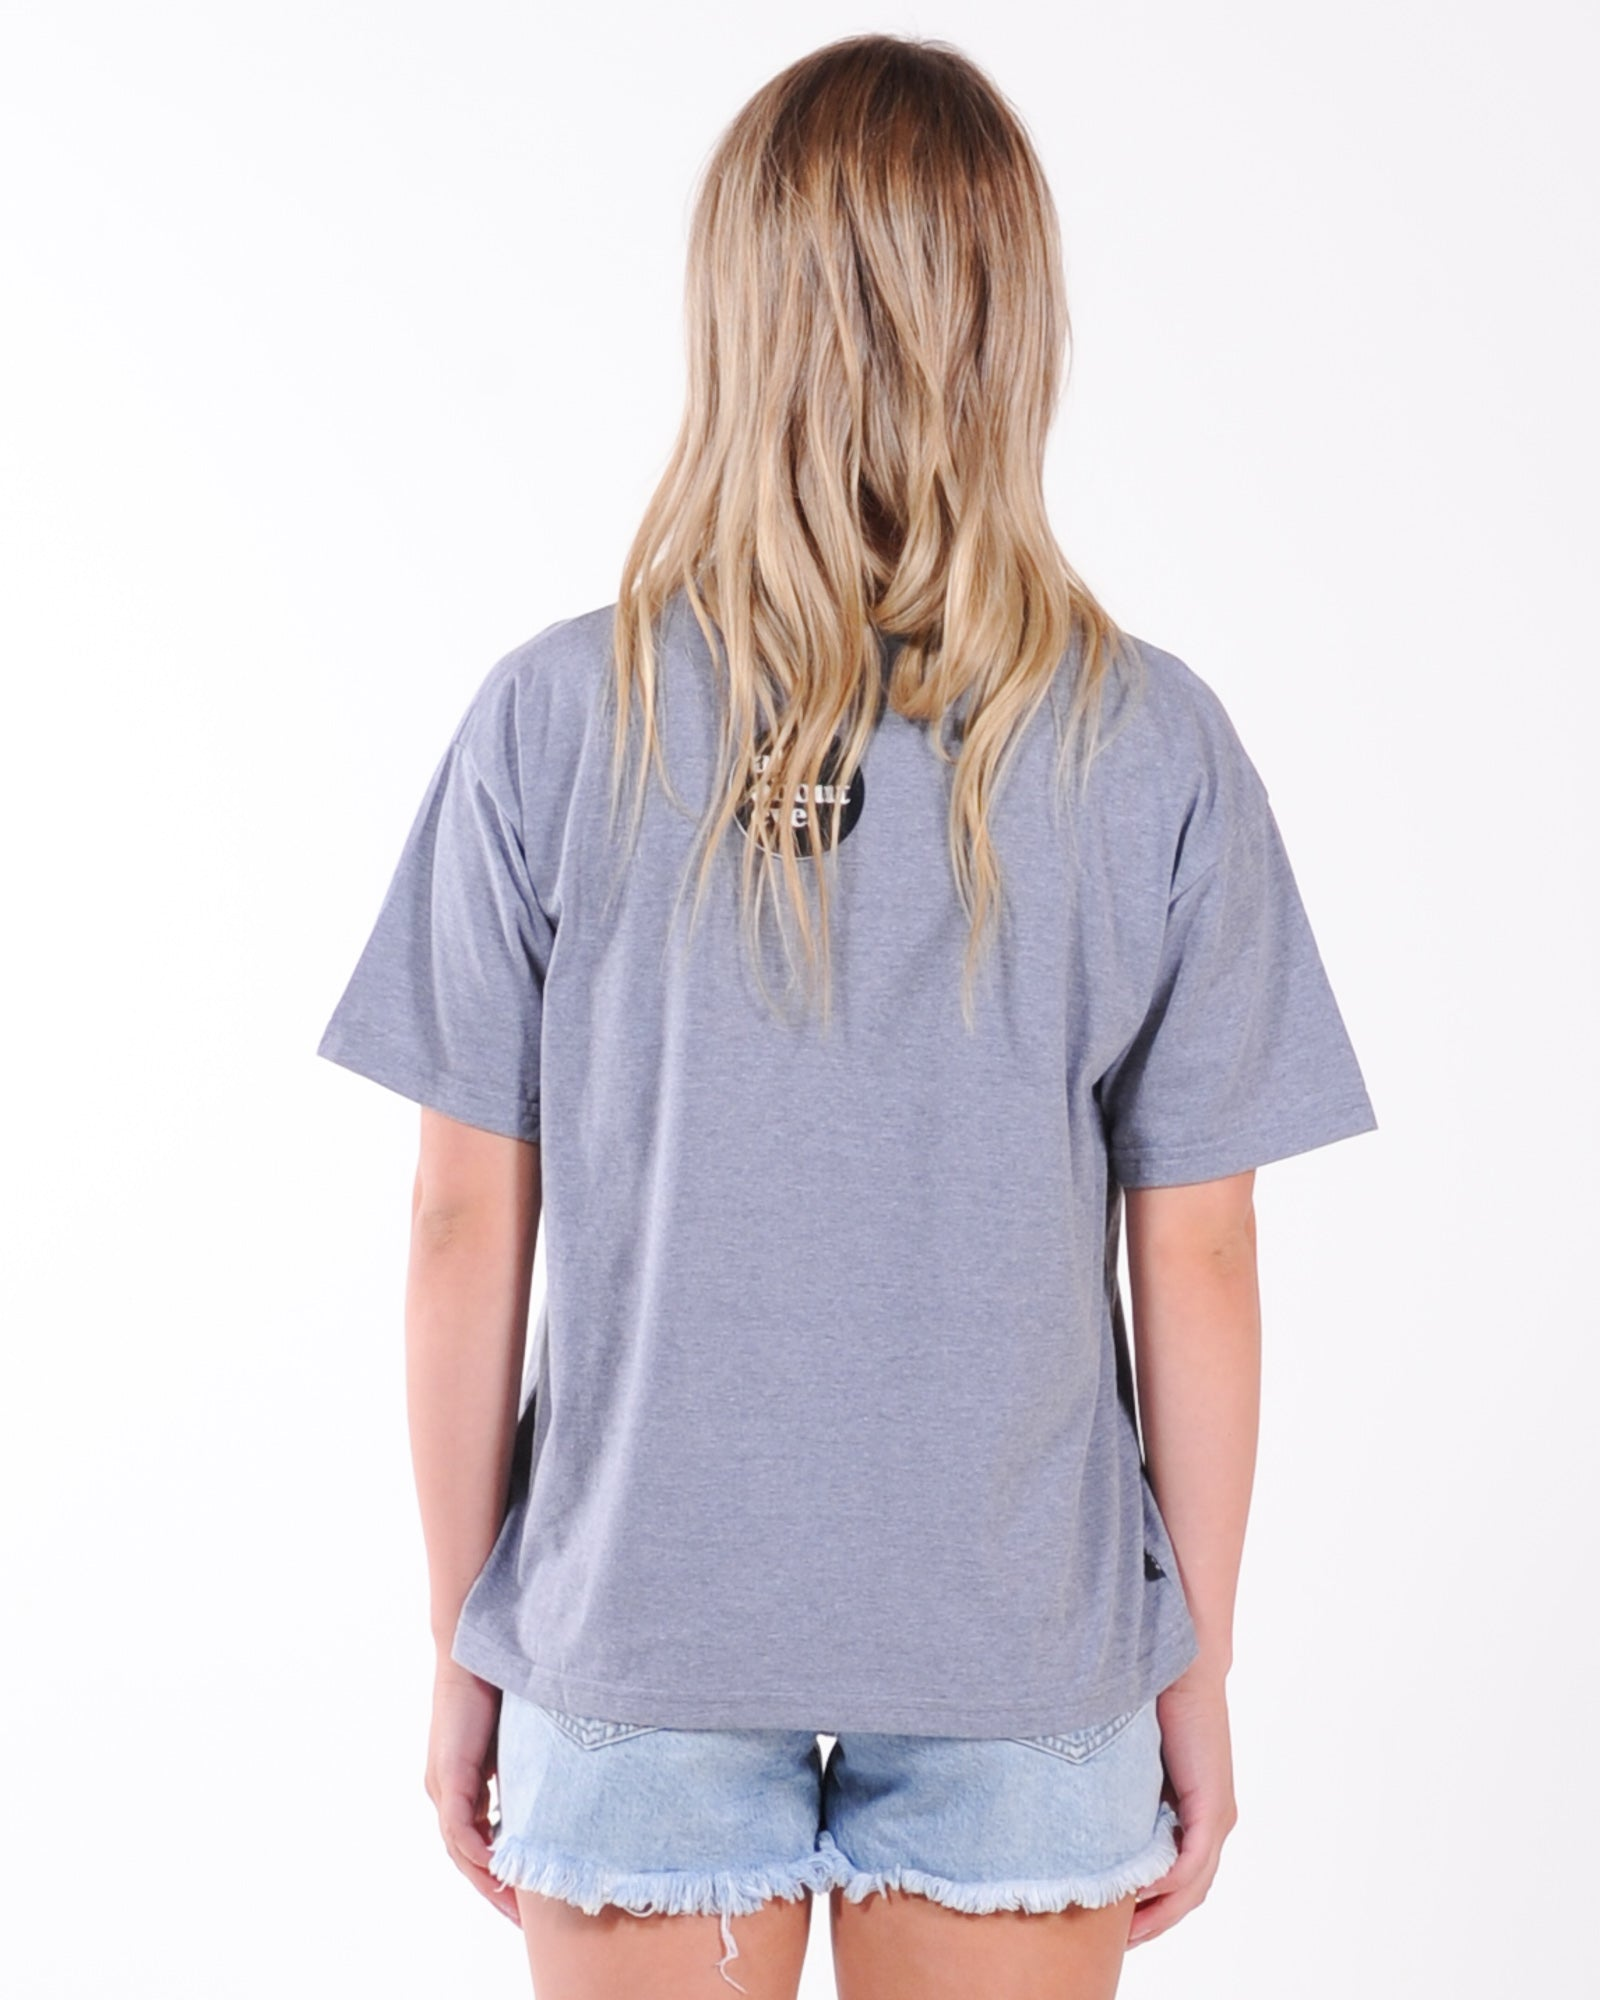 All About Eve Angled Cheetah Tee - Washed Black